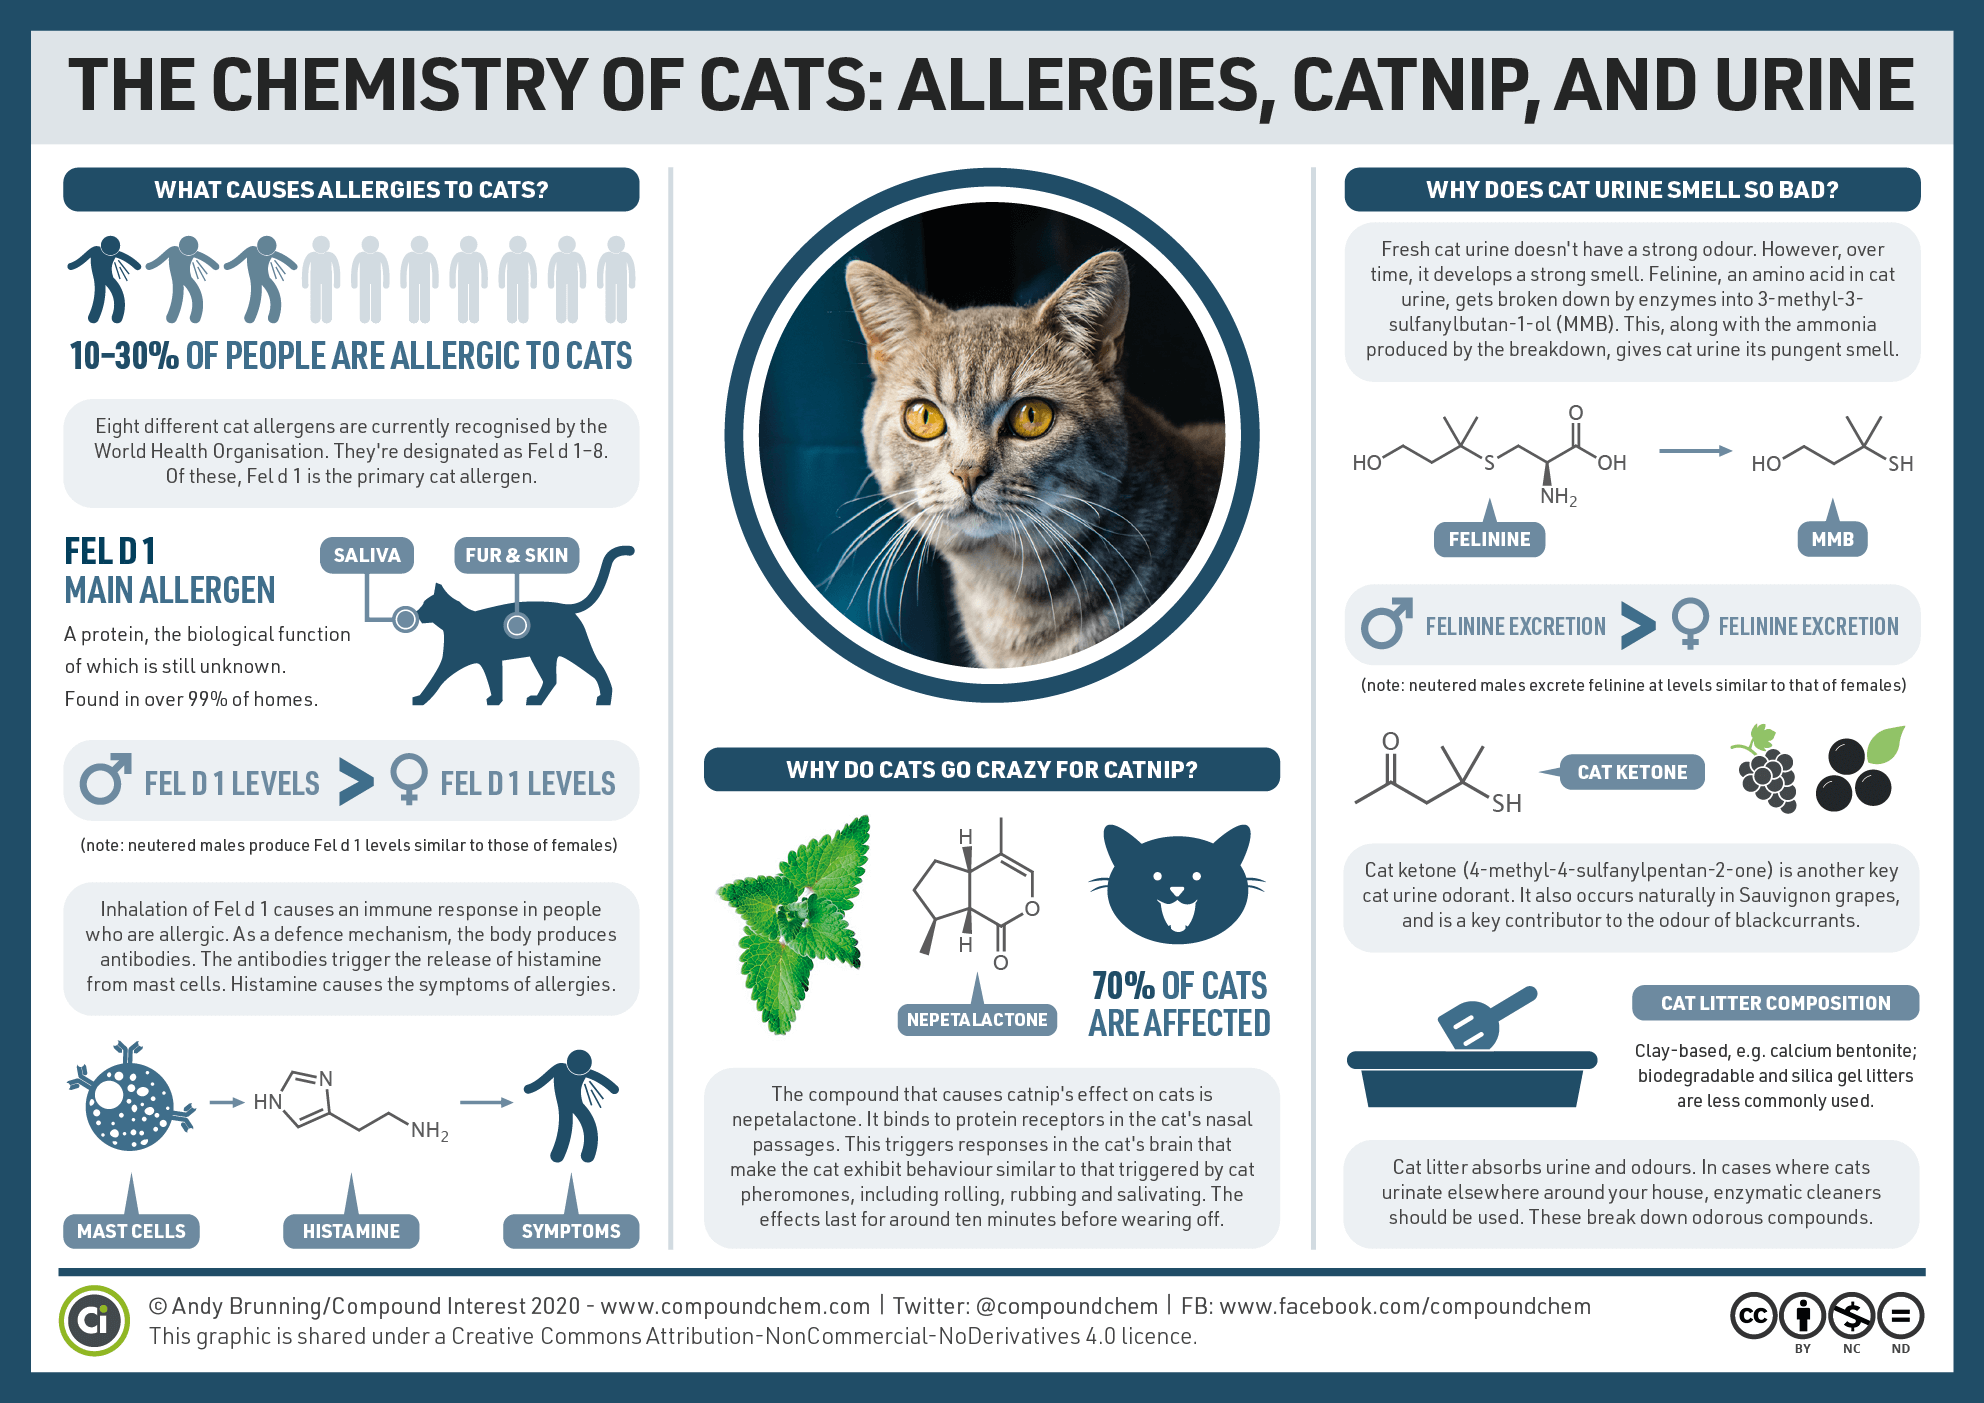 The chemistry of cats: Allergies, catnip and urine – Compound Interest